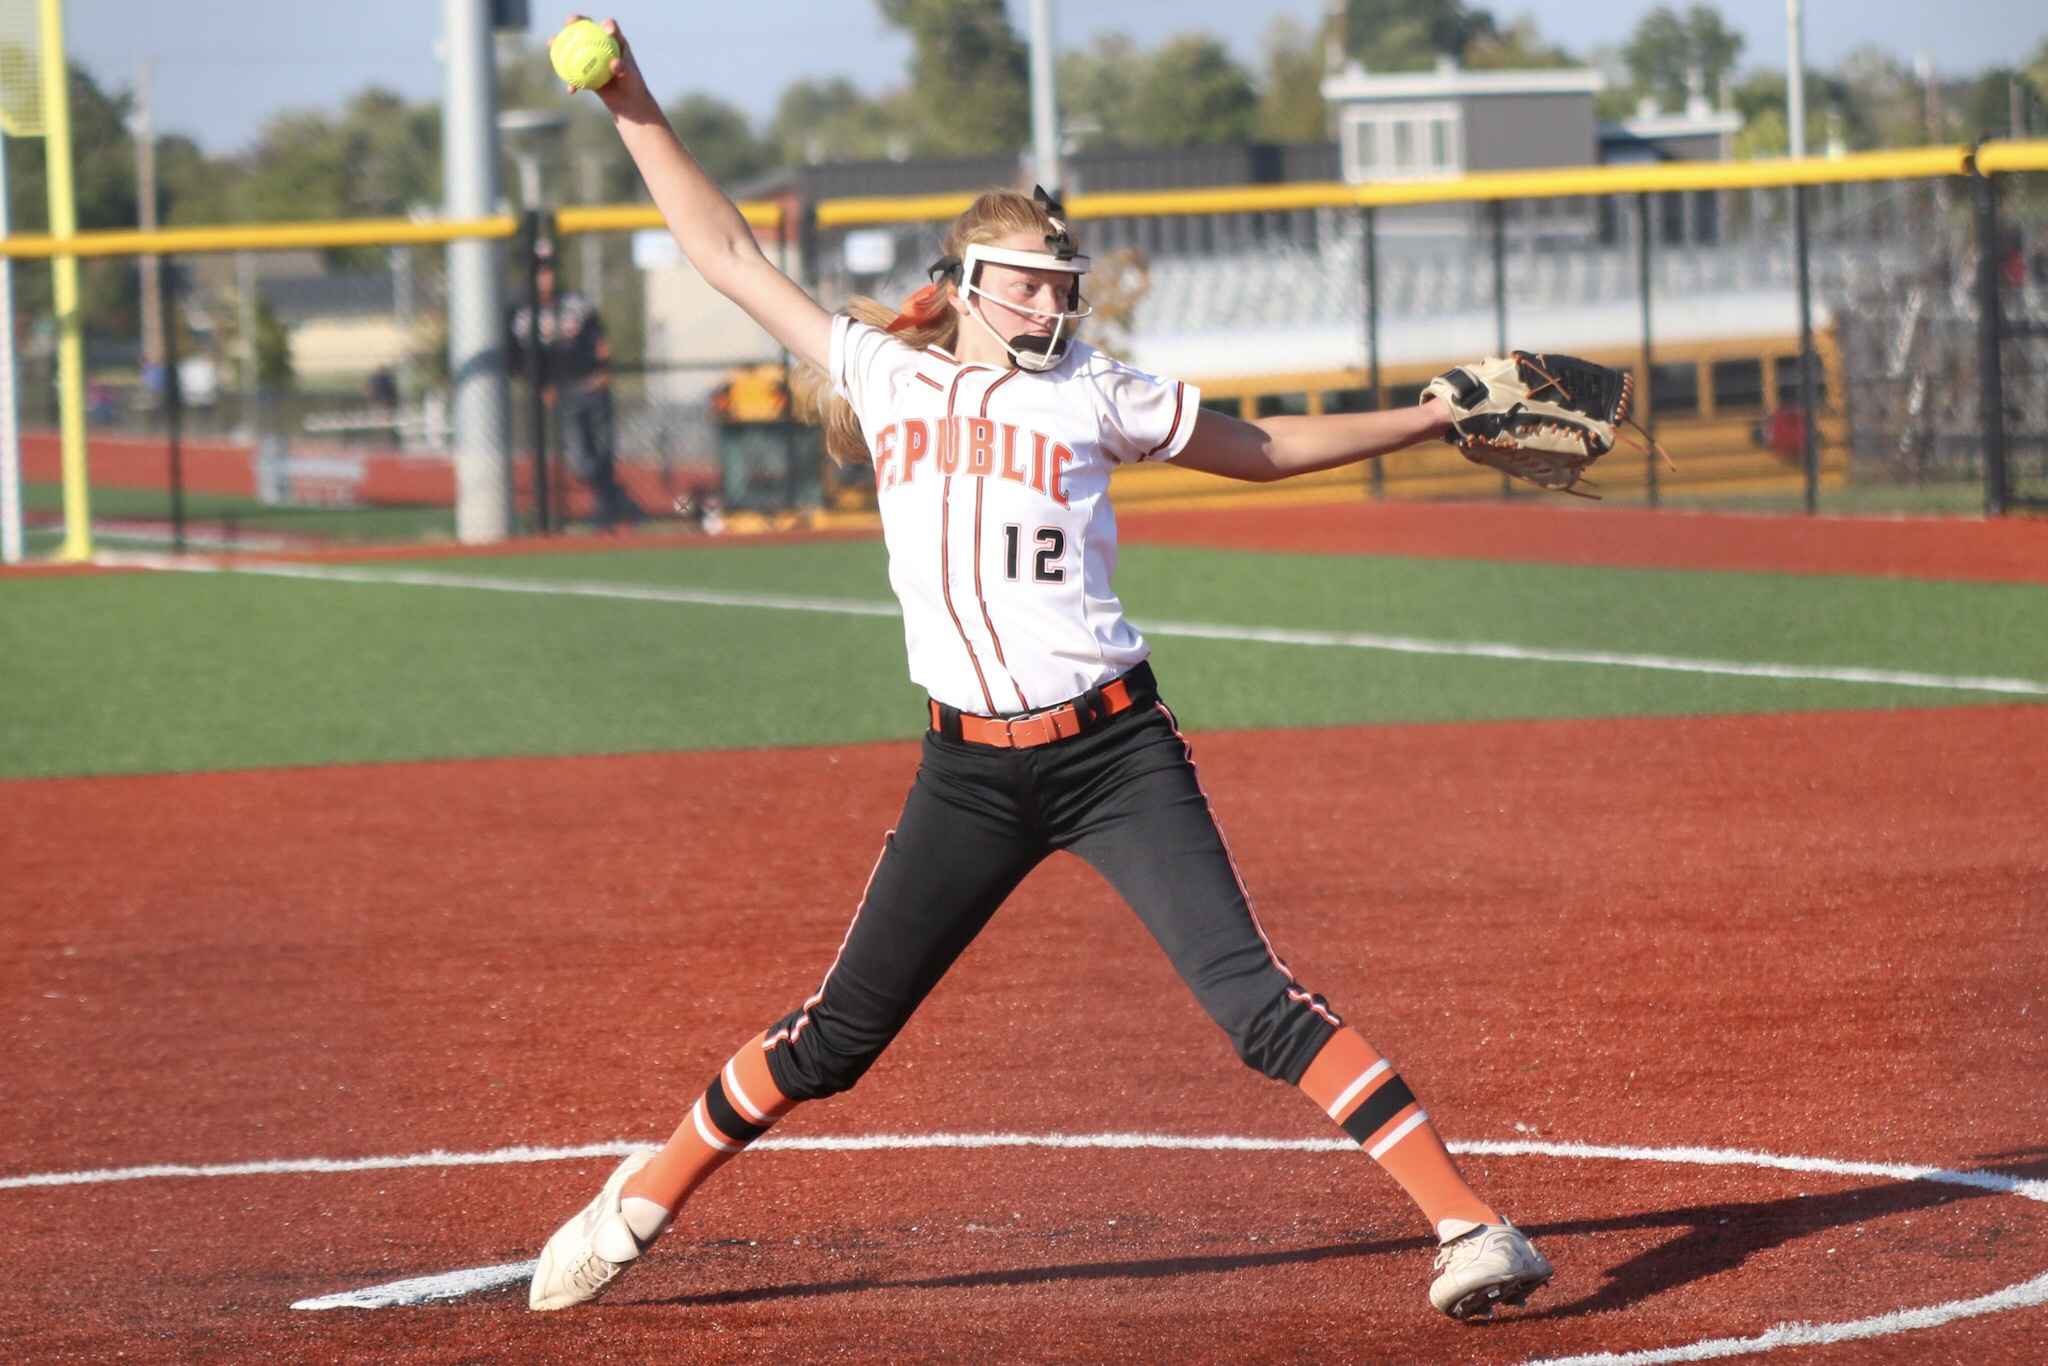 Story #8: Rachel Rook's Strikeout Chase